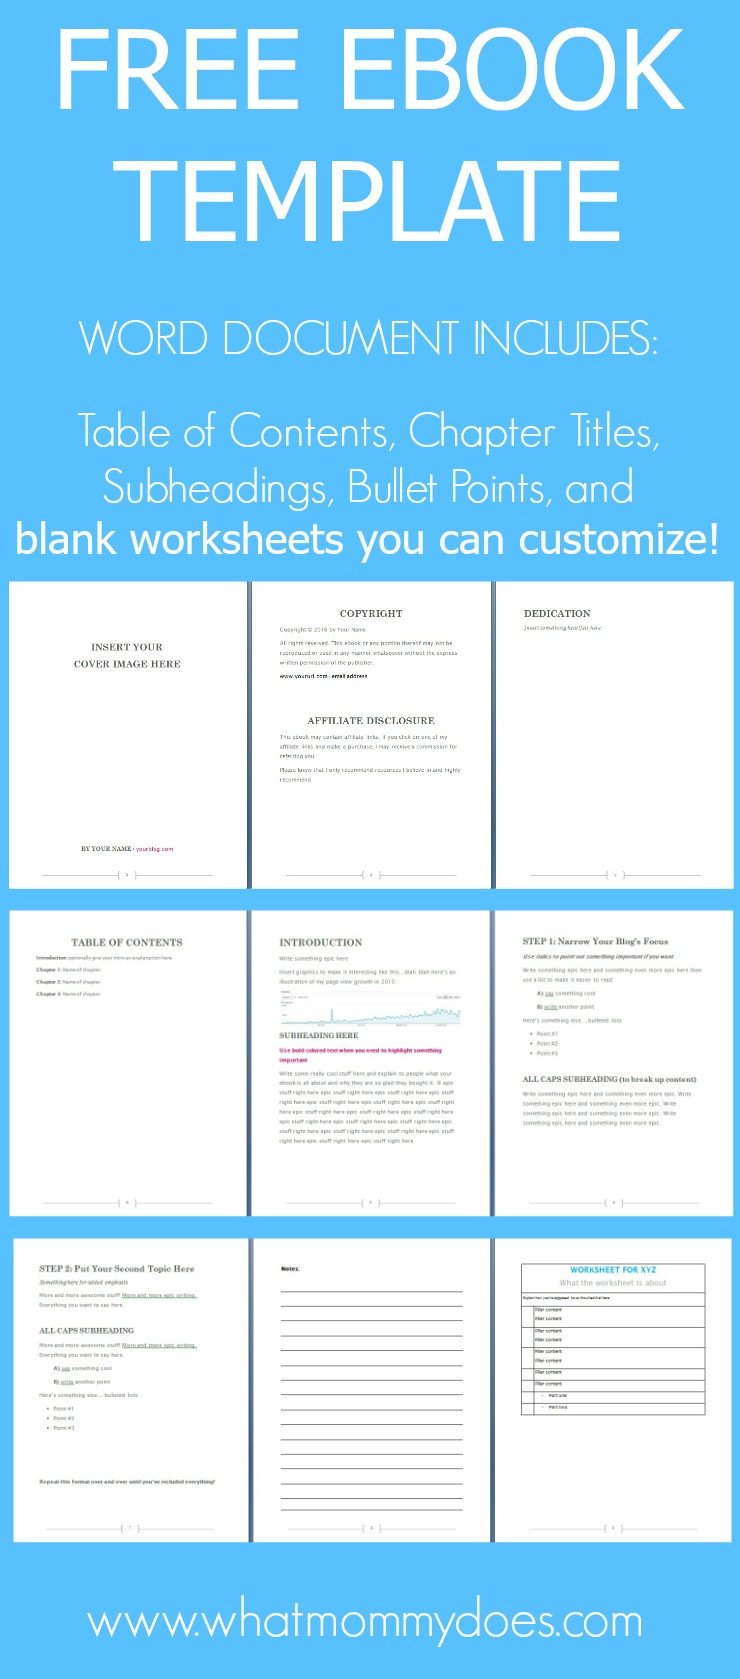 Free Templates for Microsoft Word Free Ebook Template Preformatted Word Document What